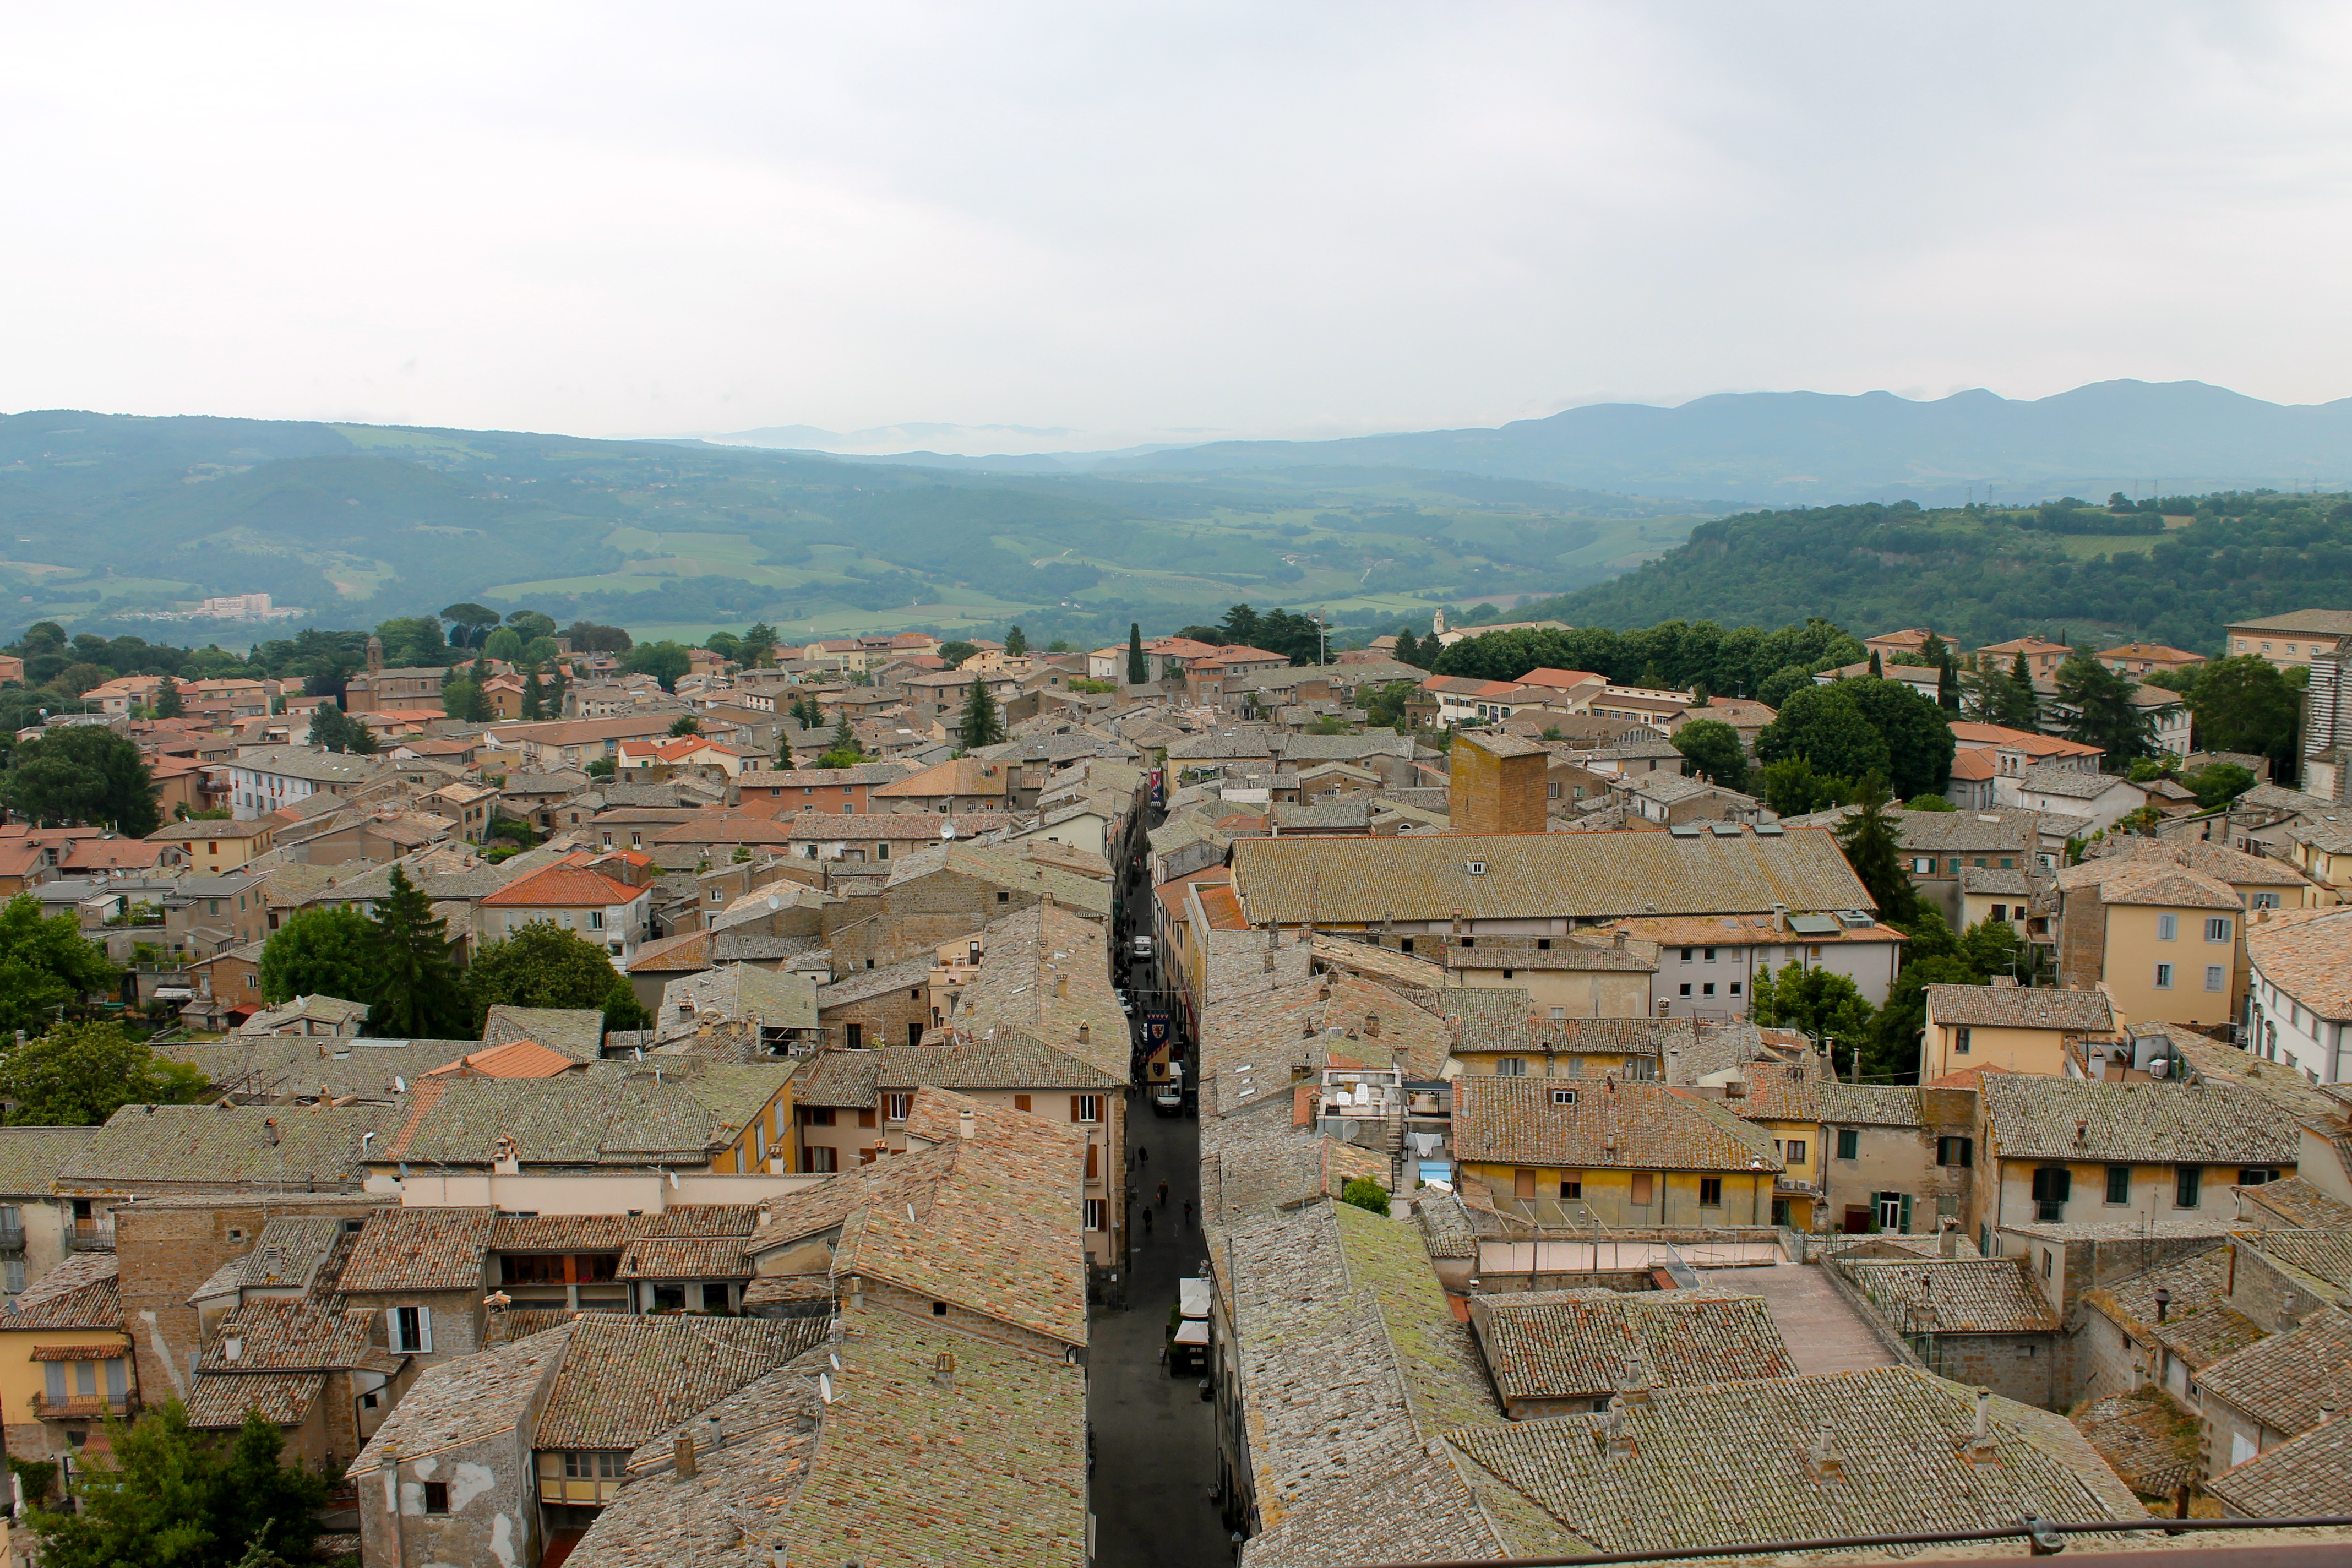 A picturesque view of Orvieto